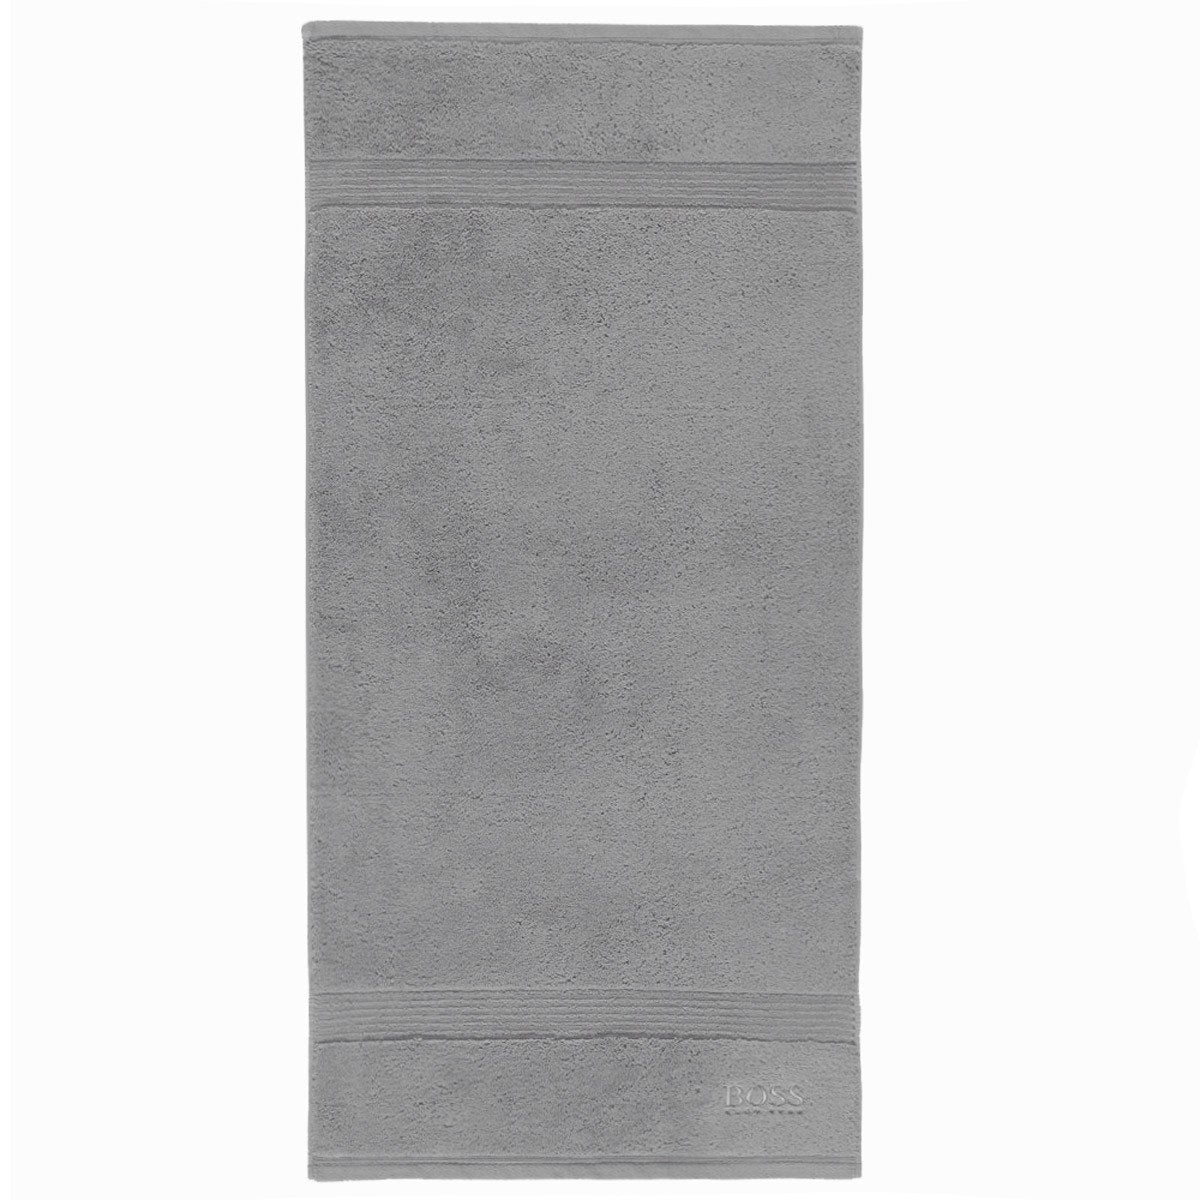 Loft Light Grey Bath Towels by Hugo Boss | Fig Linens and Home